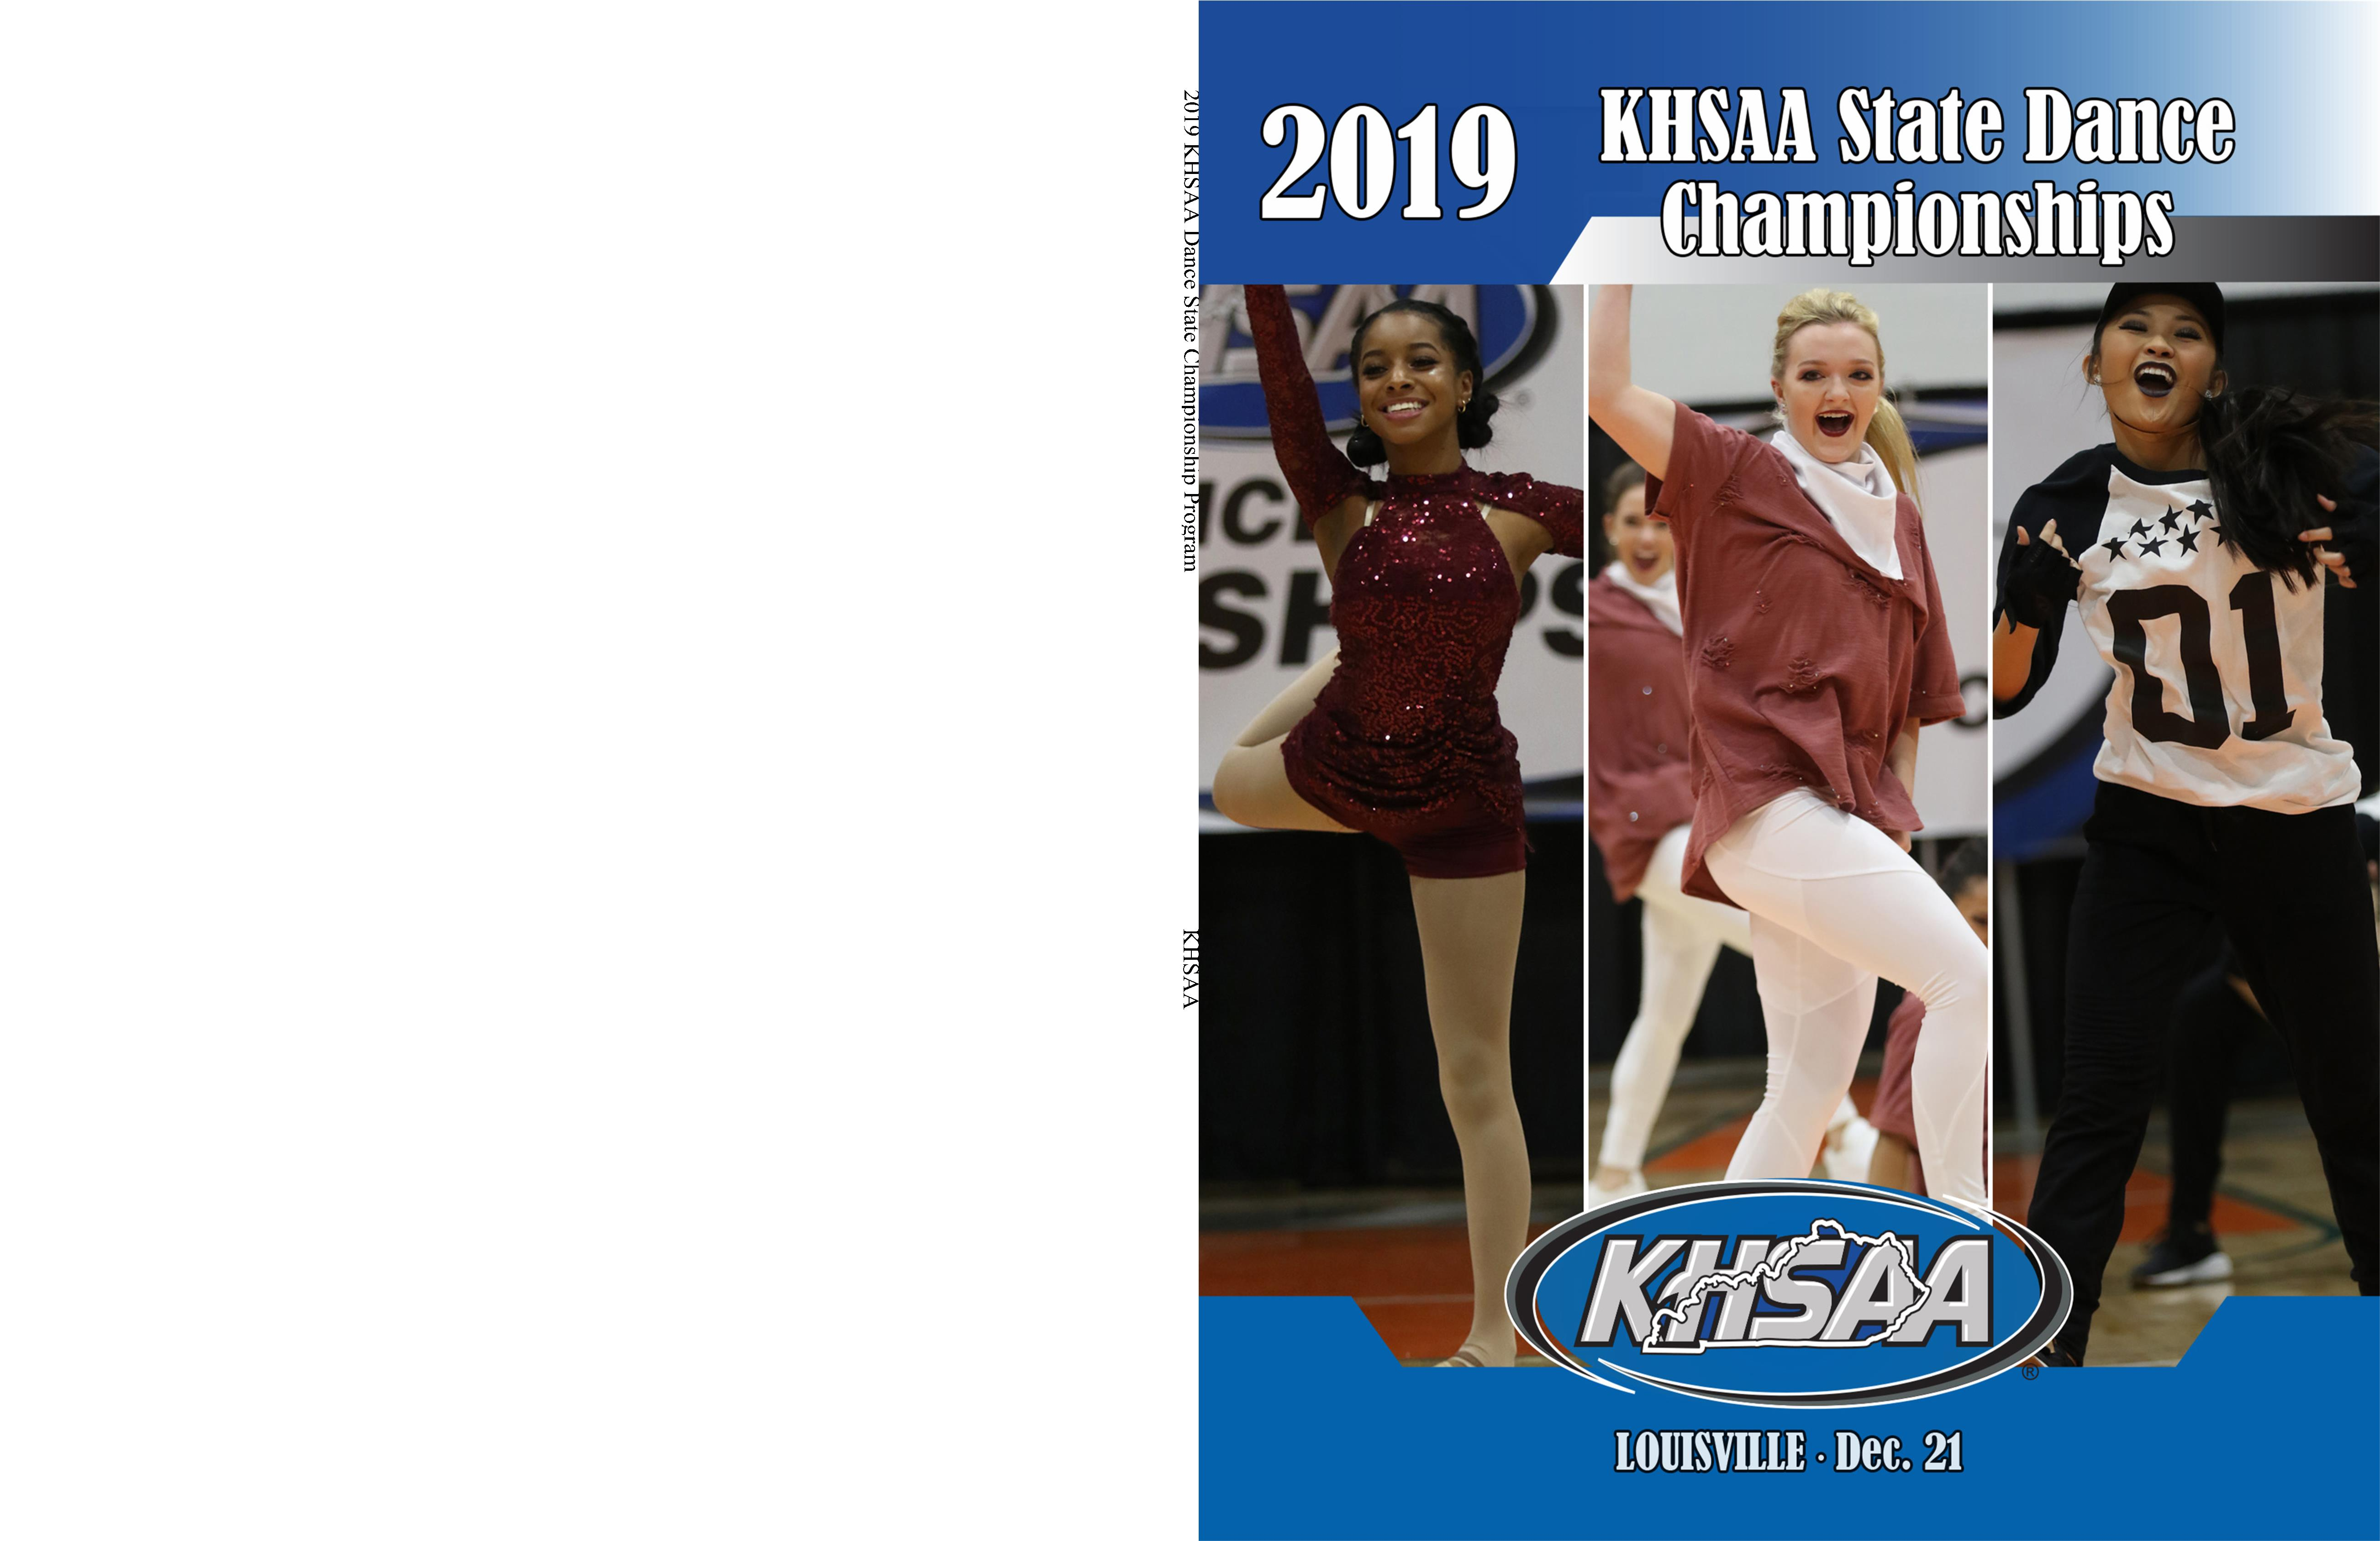 2019 KHSAA Dance State Championship Program cover image